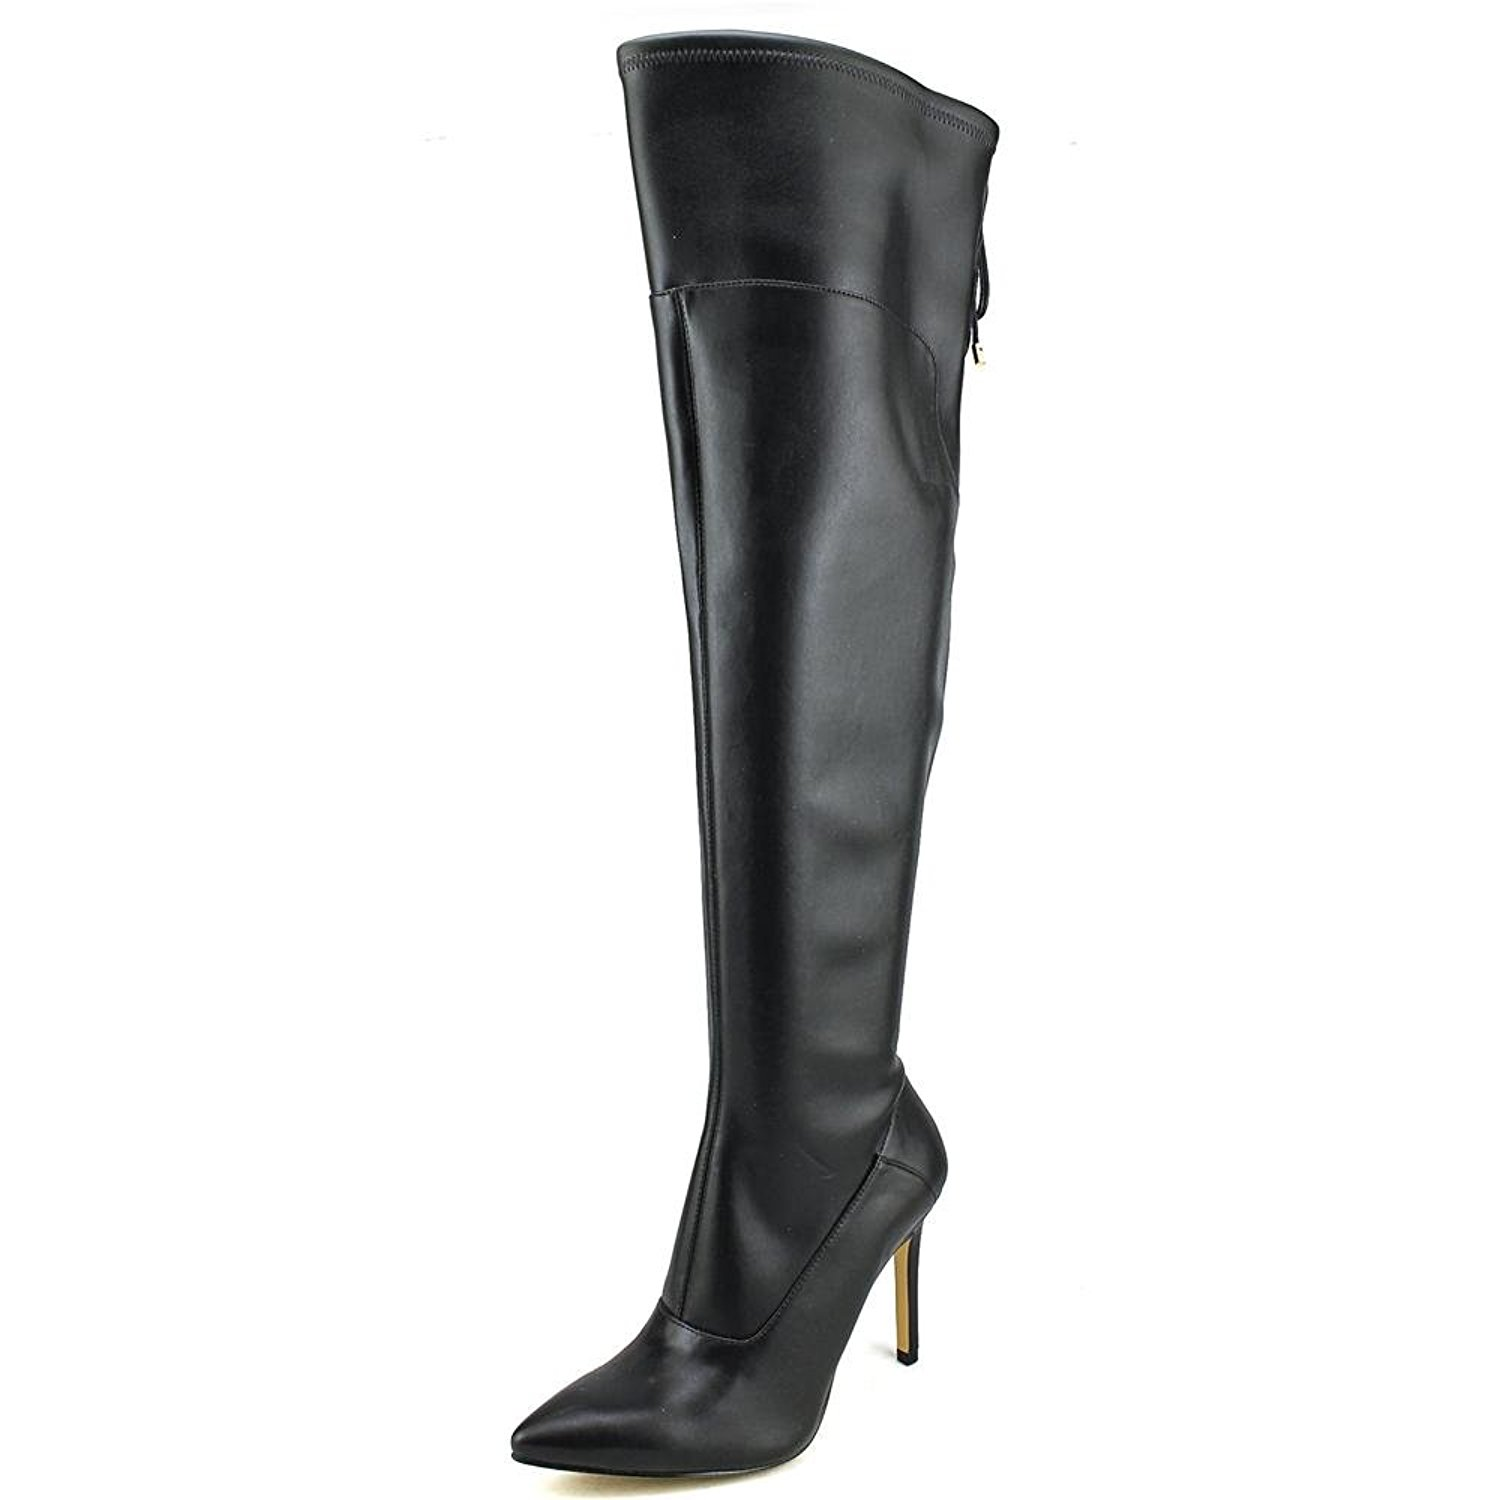 Guess Women's Valerine Pointed Toe Synthetic Black Over the Knee Boot Black Synthetic Size 8.5 0c5456